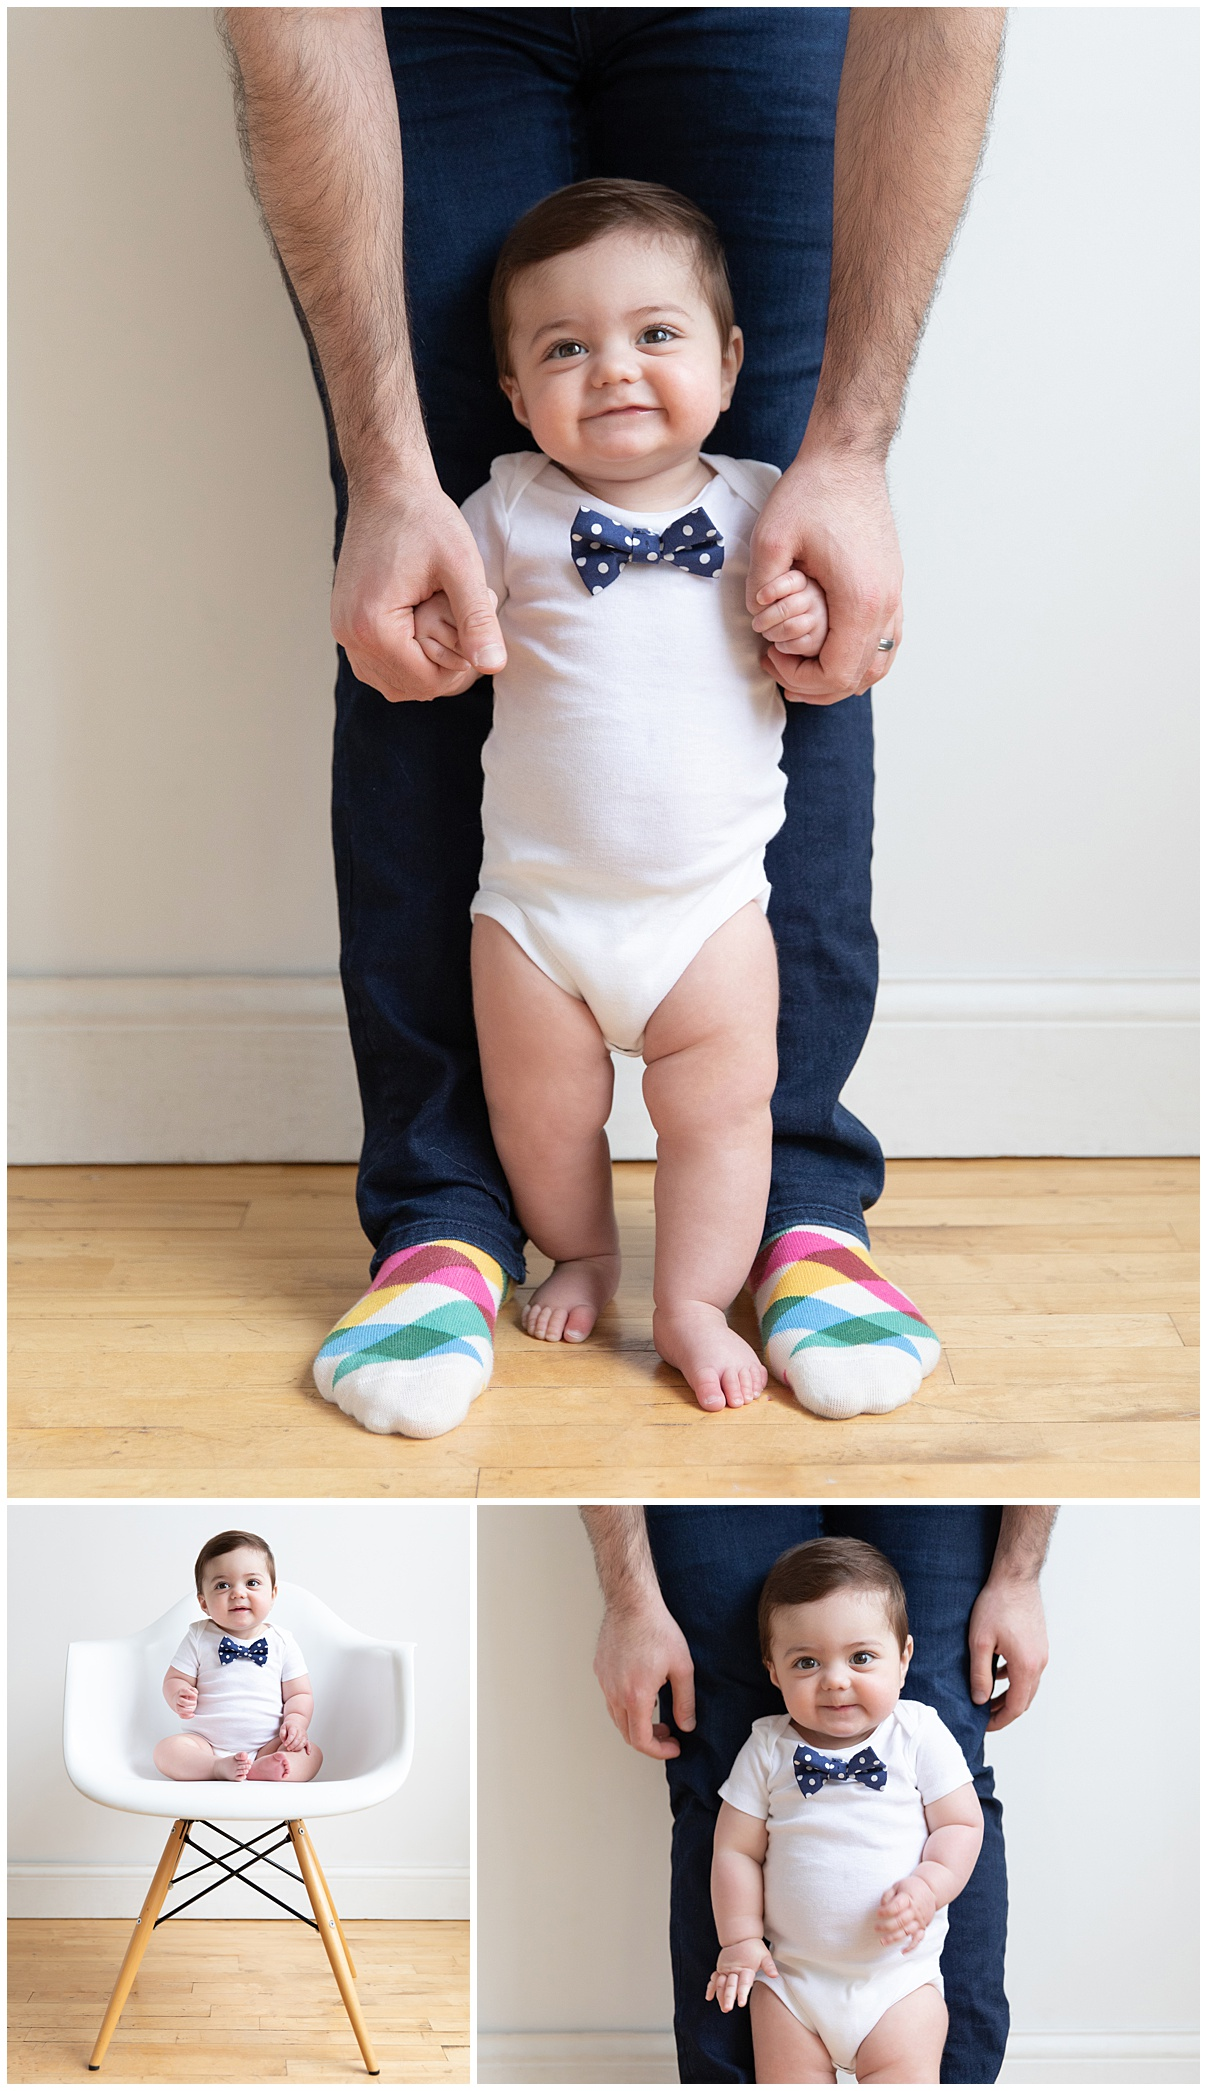 six_month_portrait_sesession.jpg